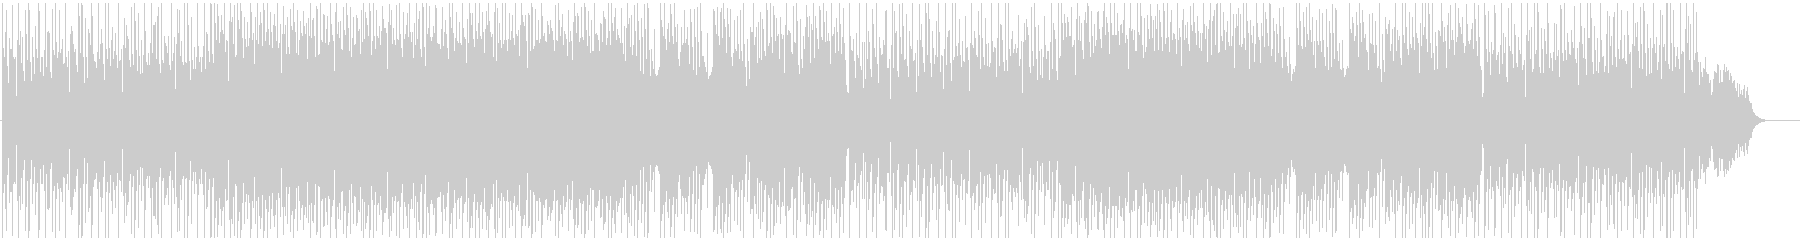 BGM of light and bright melody's unreproduced waveform